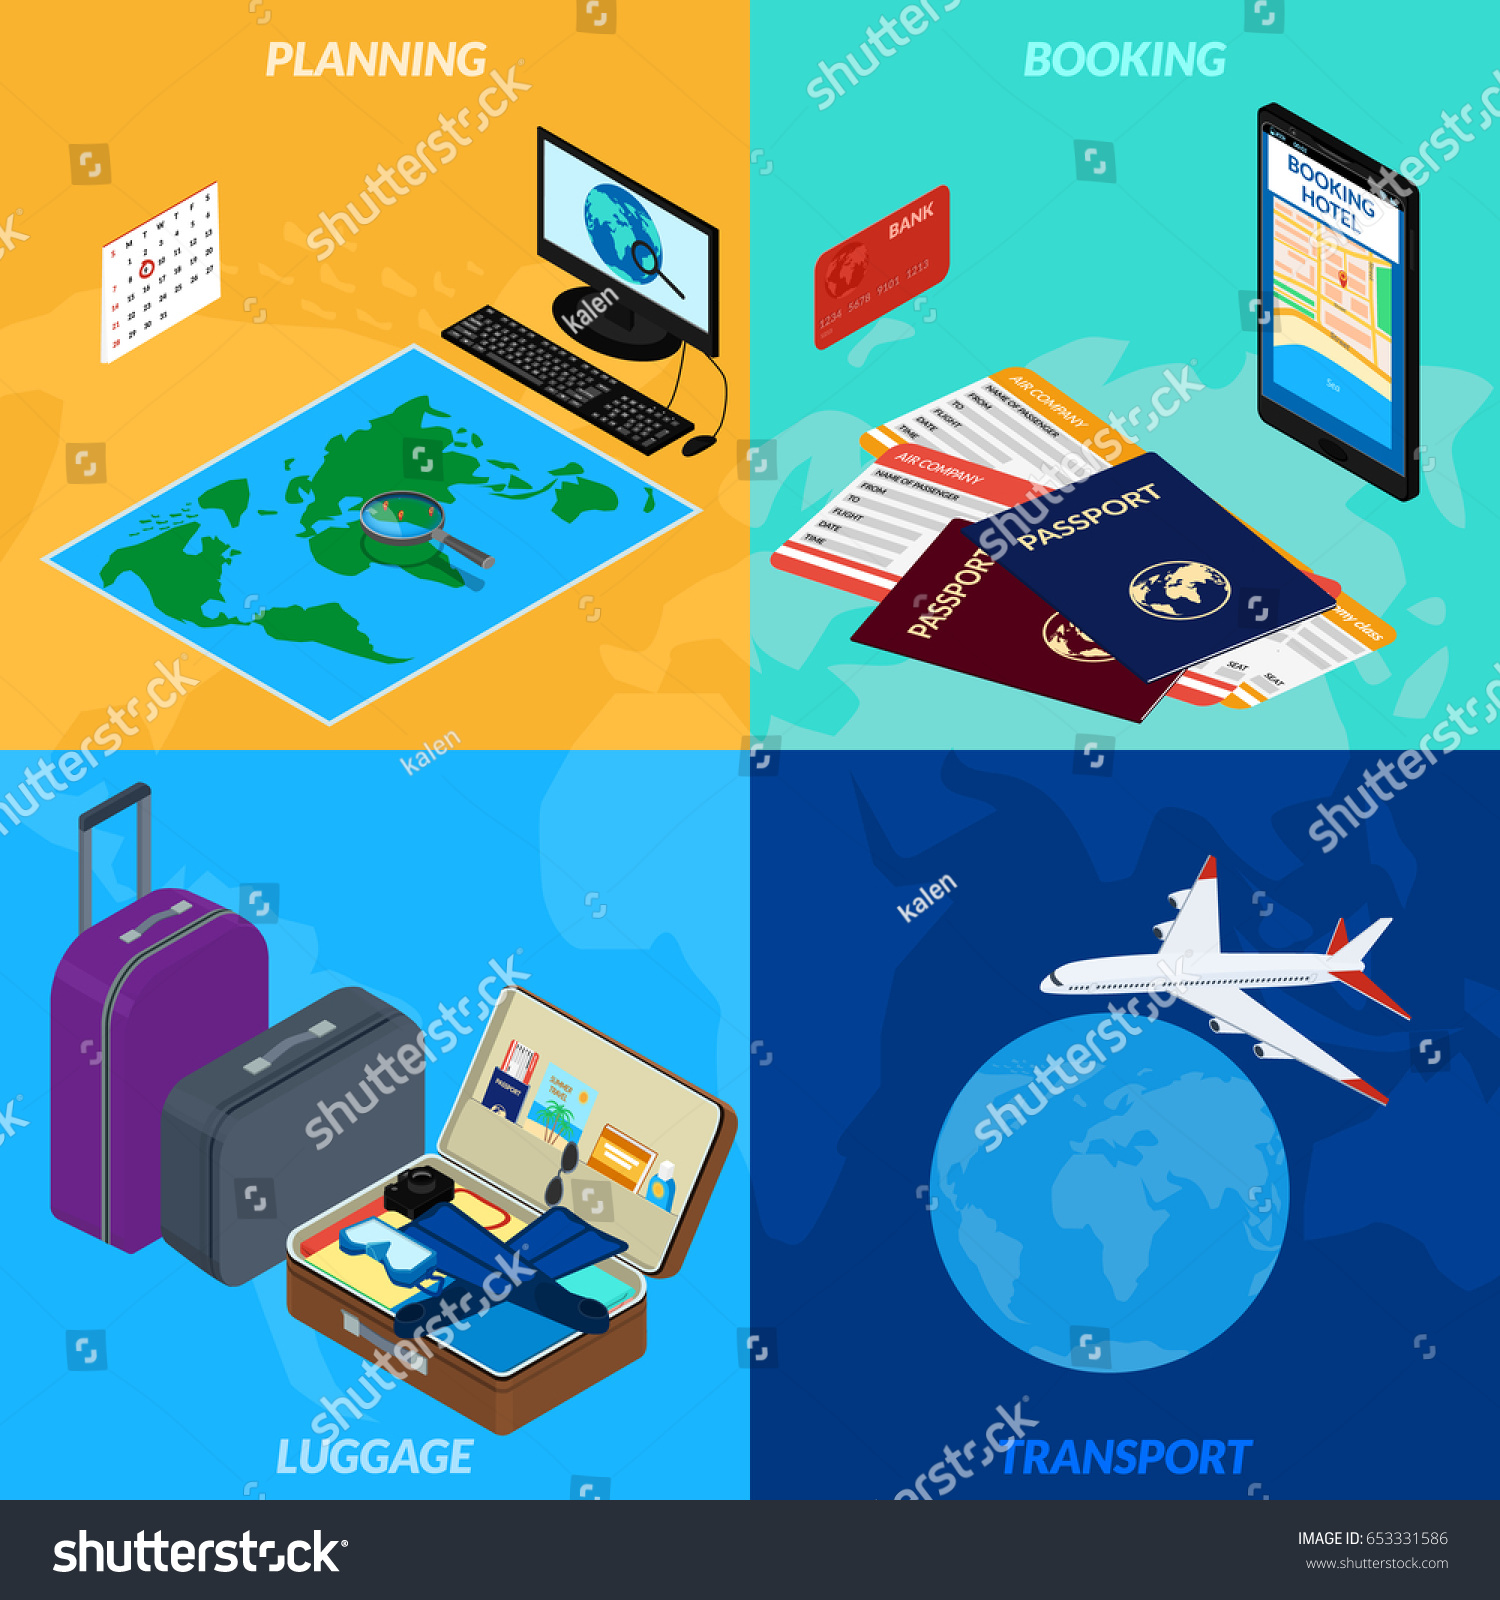 Illustration travel infographic world map magnifying stock world map magnifying glass computer luggage a gumiabroncs Images